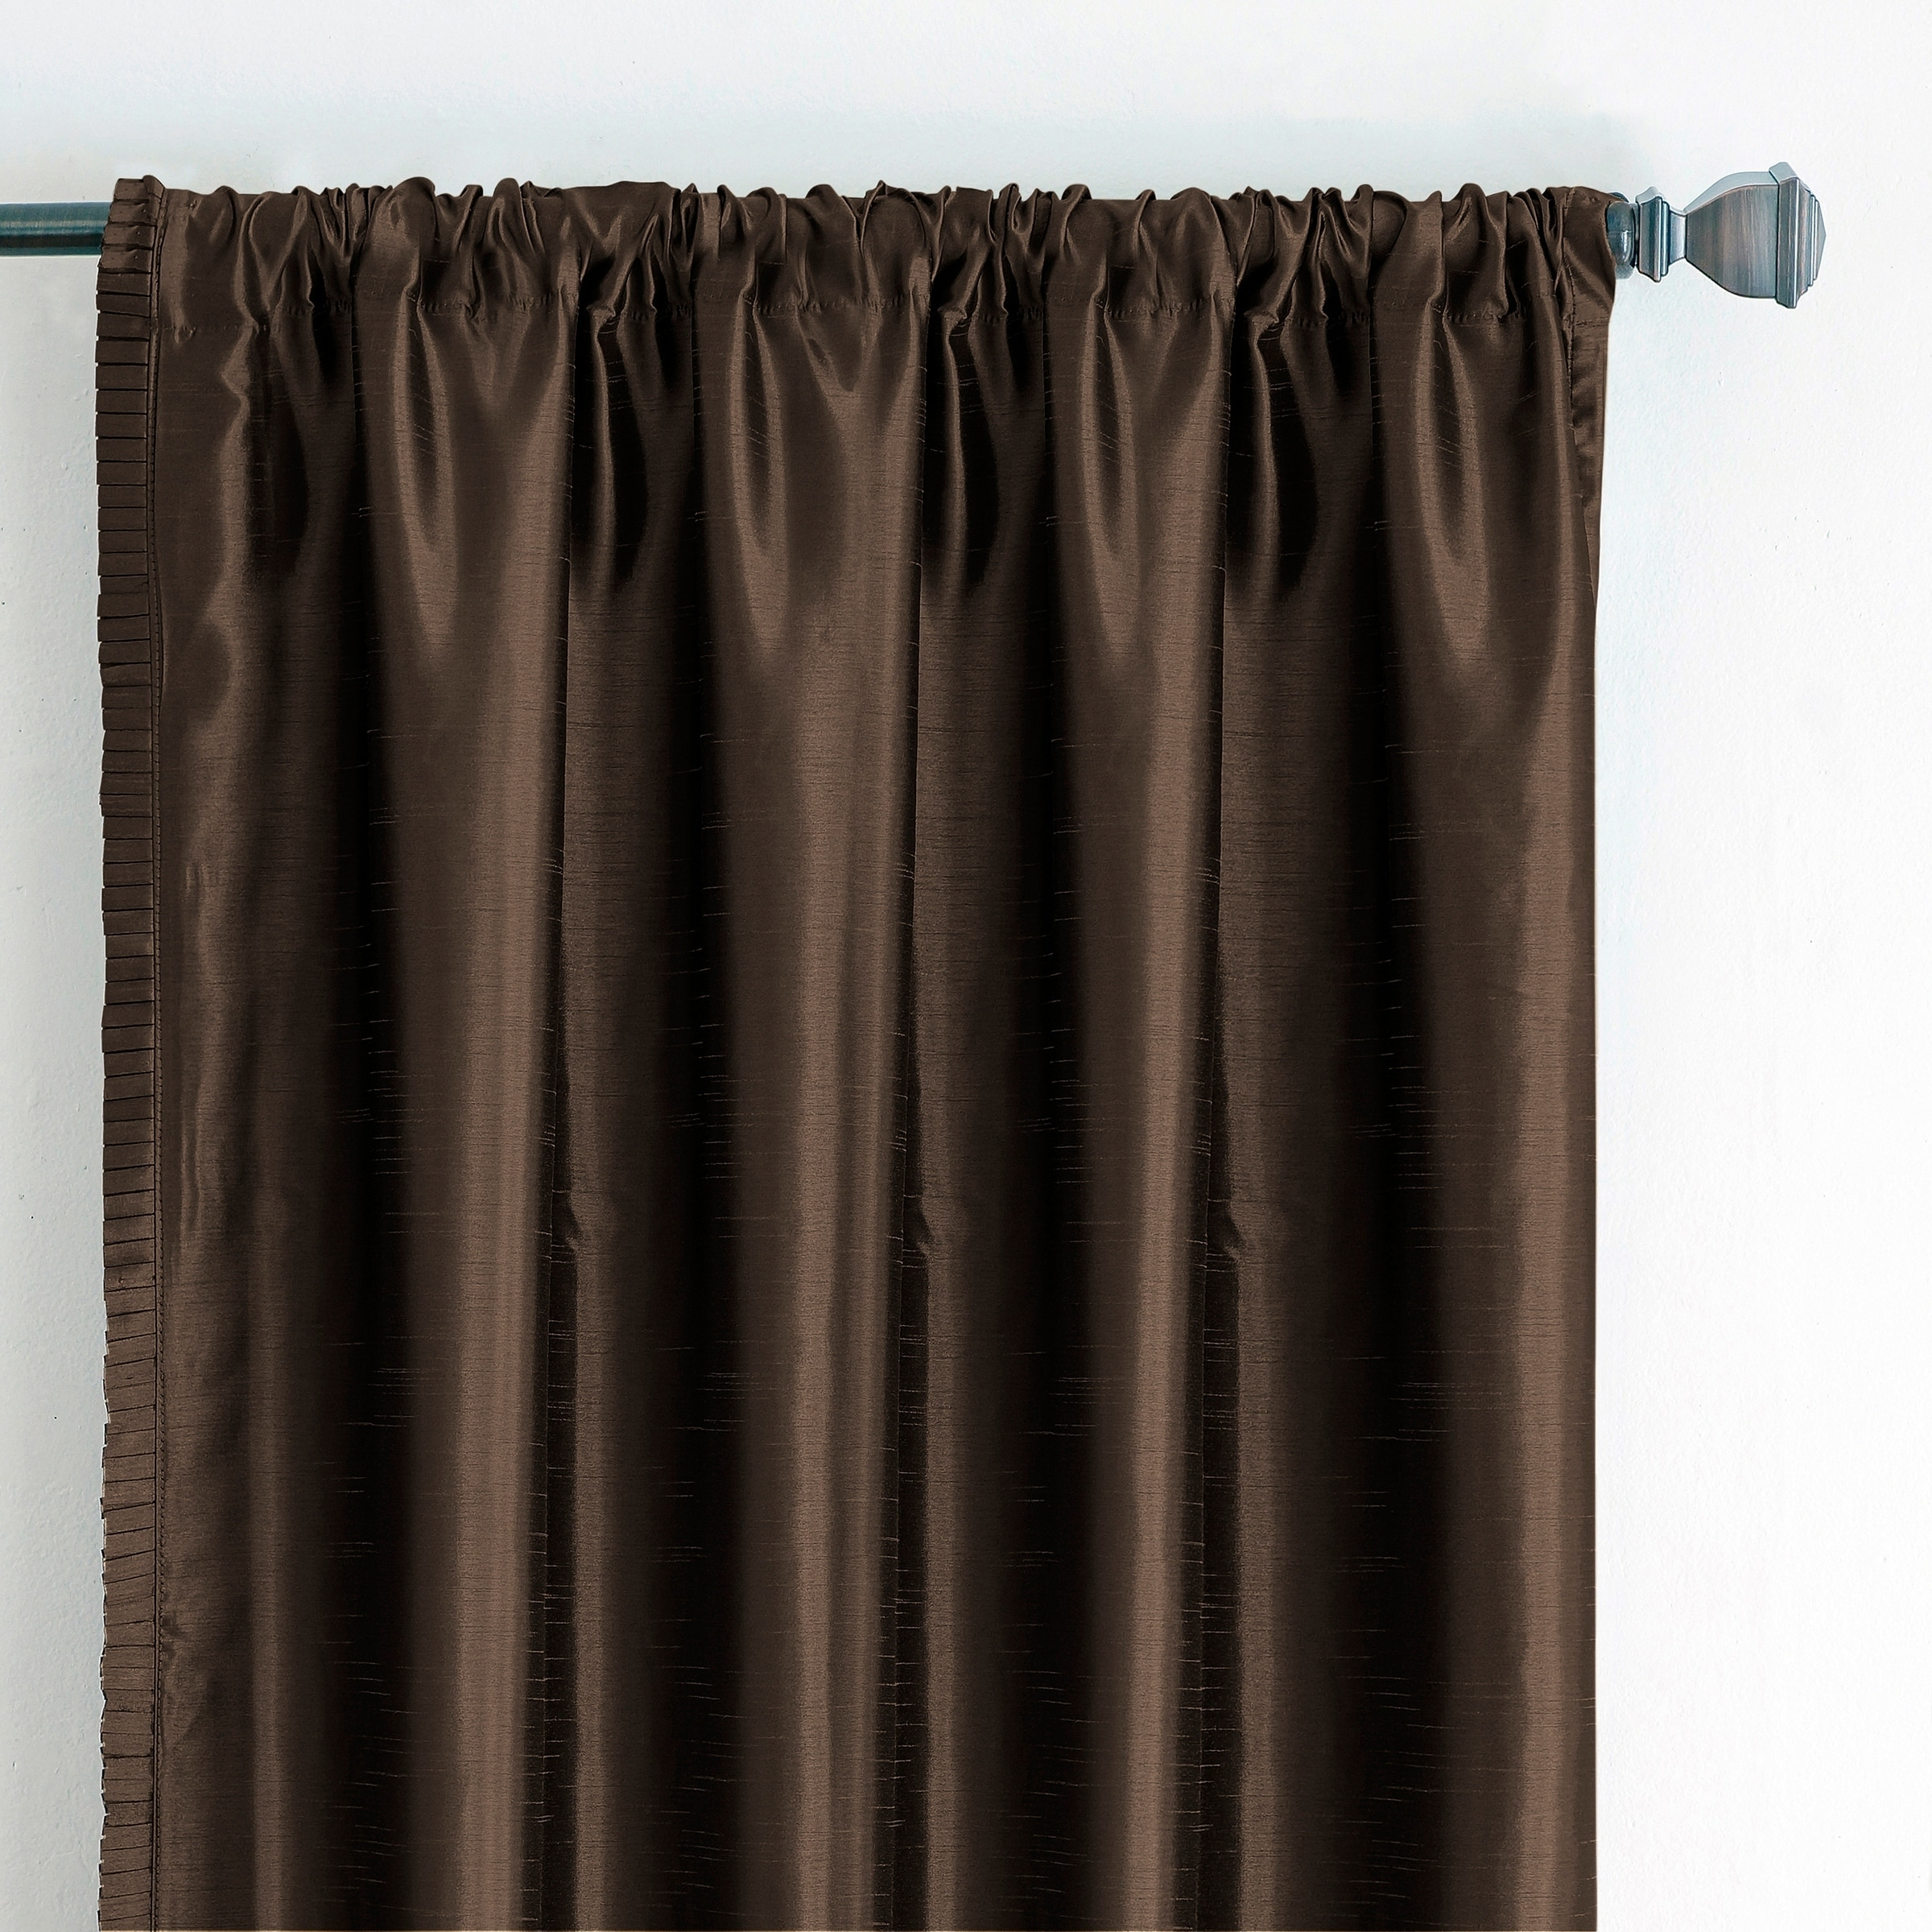 Elrene Versailles Pleated Blackout Curtain Panel With Elrene Versailles Pleated Blackout Curtain Panels (View 11 of 20)